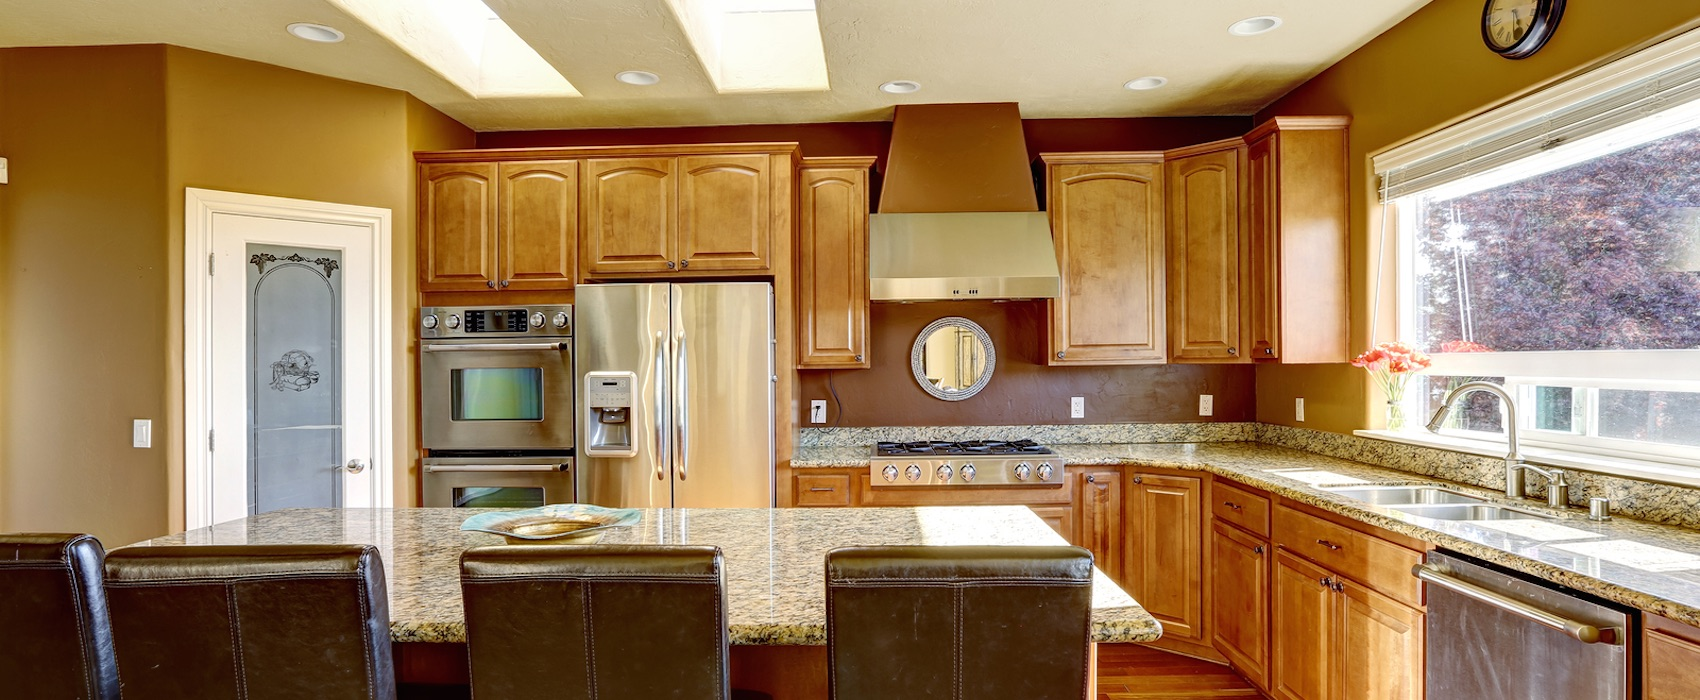 Gentil Granite Depot Denver Colorado | Granite Countertops Denver Colorado |  Kitchen Cabinets Denver | Kitchen Remodeling Denver